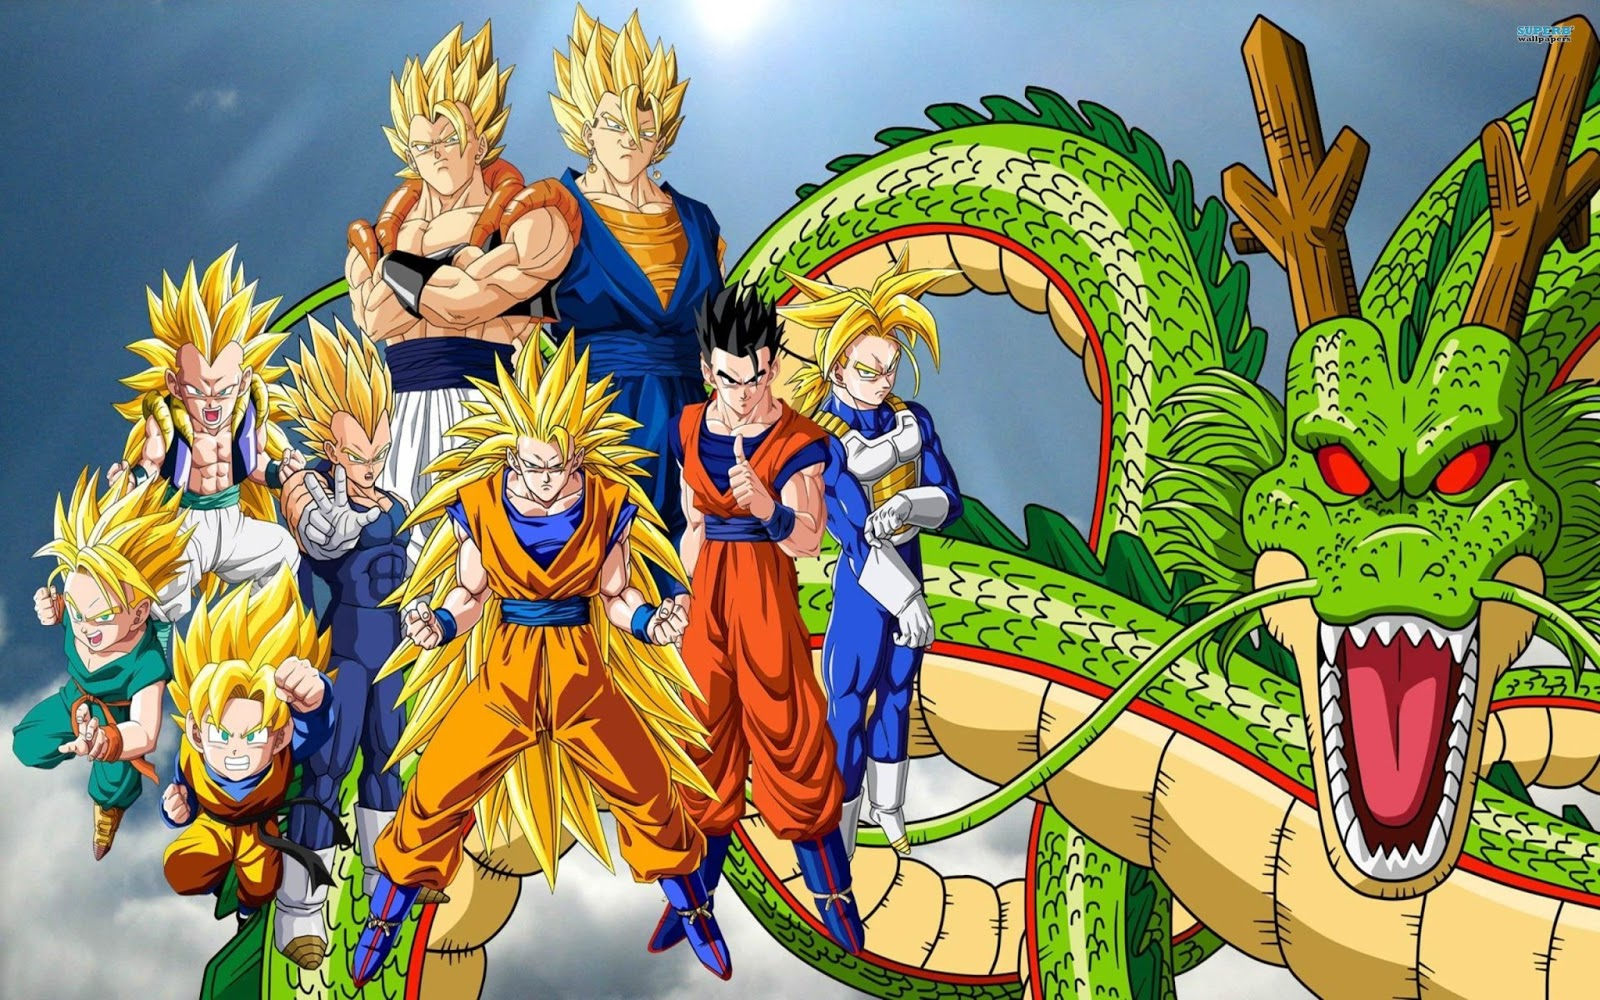 Wallpapers HD Dragon Ball Gt Z Full HD Wallpapers 1600x1000